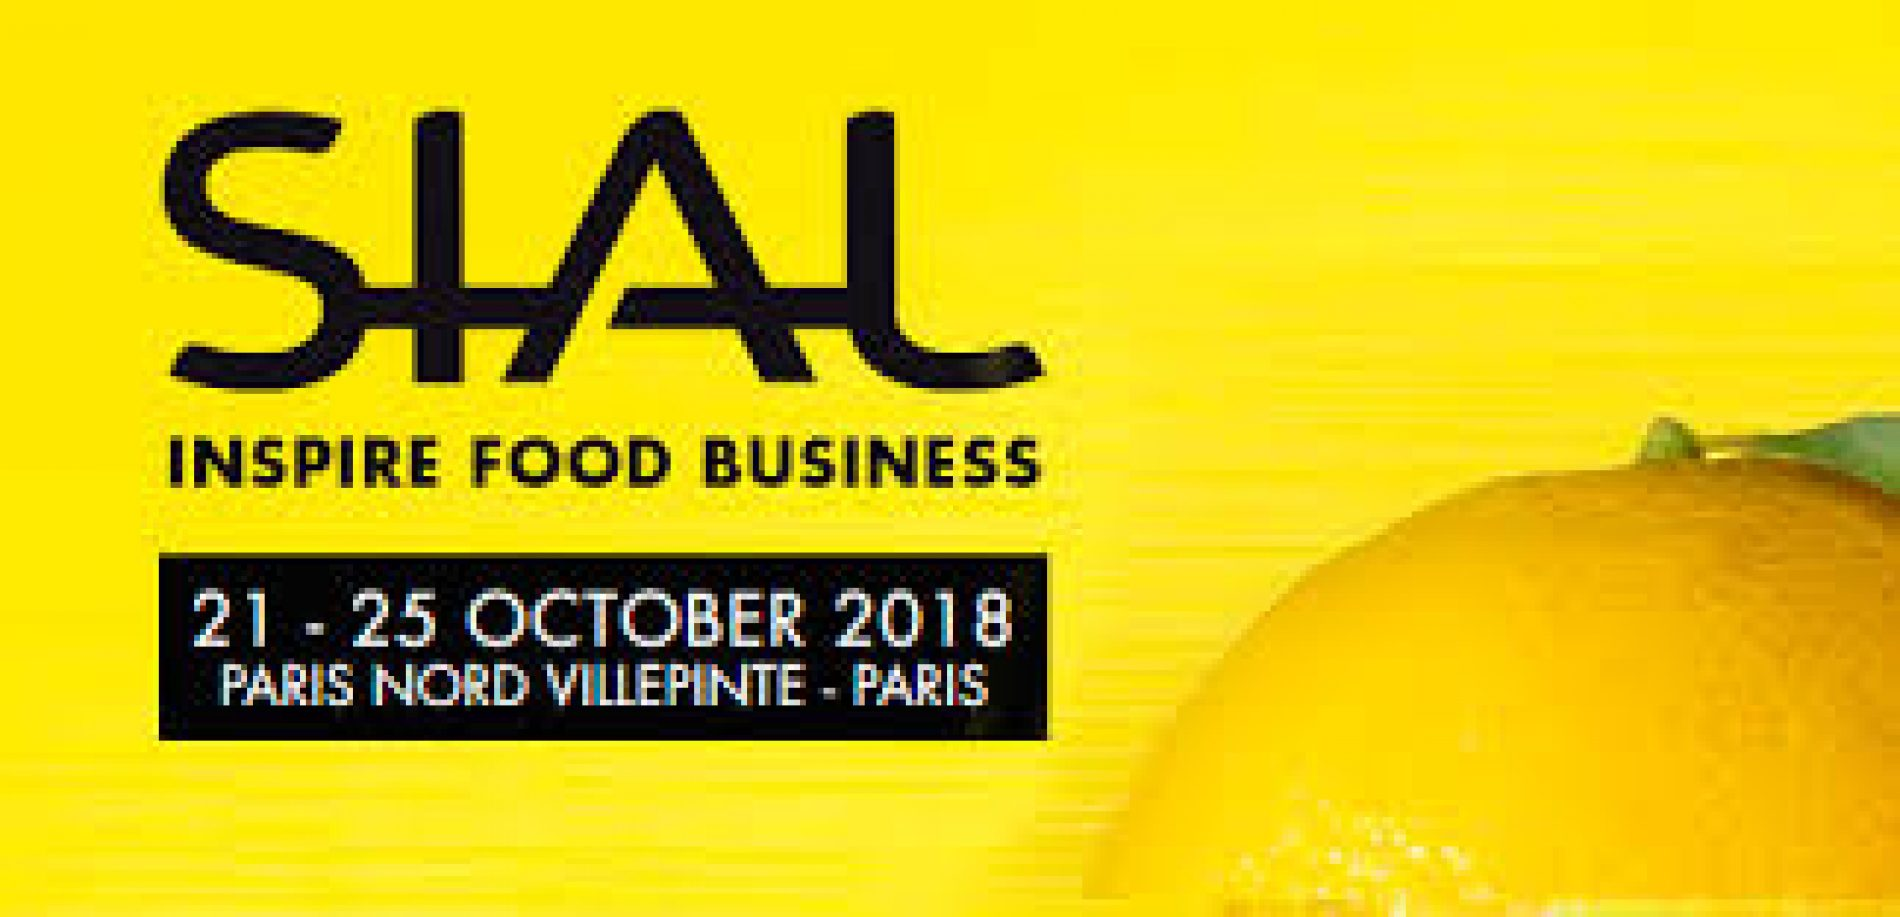 21 – 25 Oct 2018: InterAromat at SIAL 2018 – Paris, France